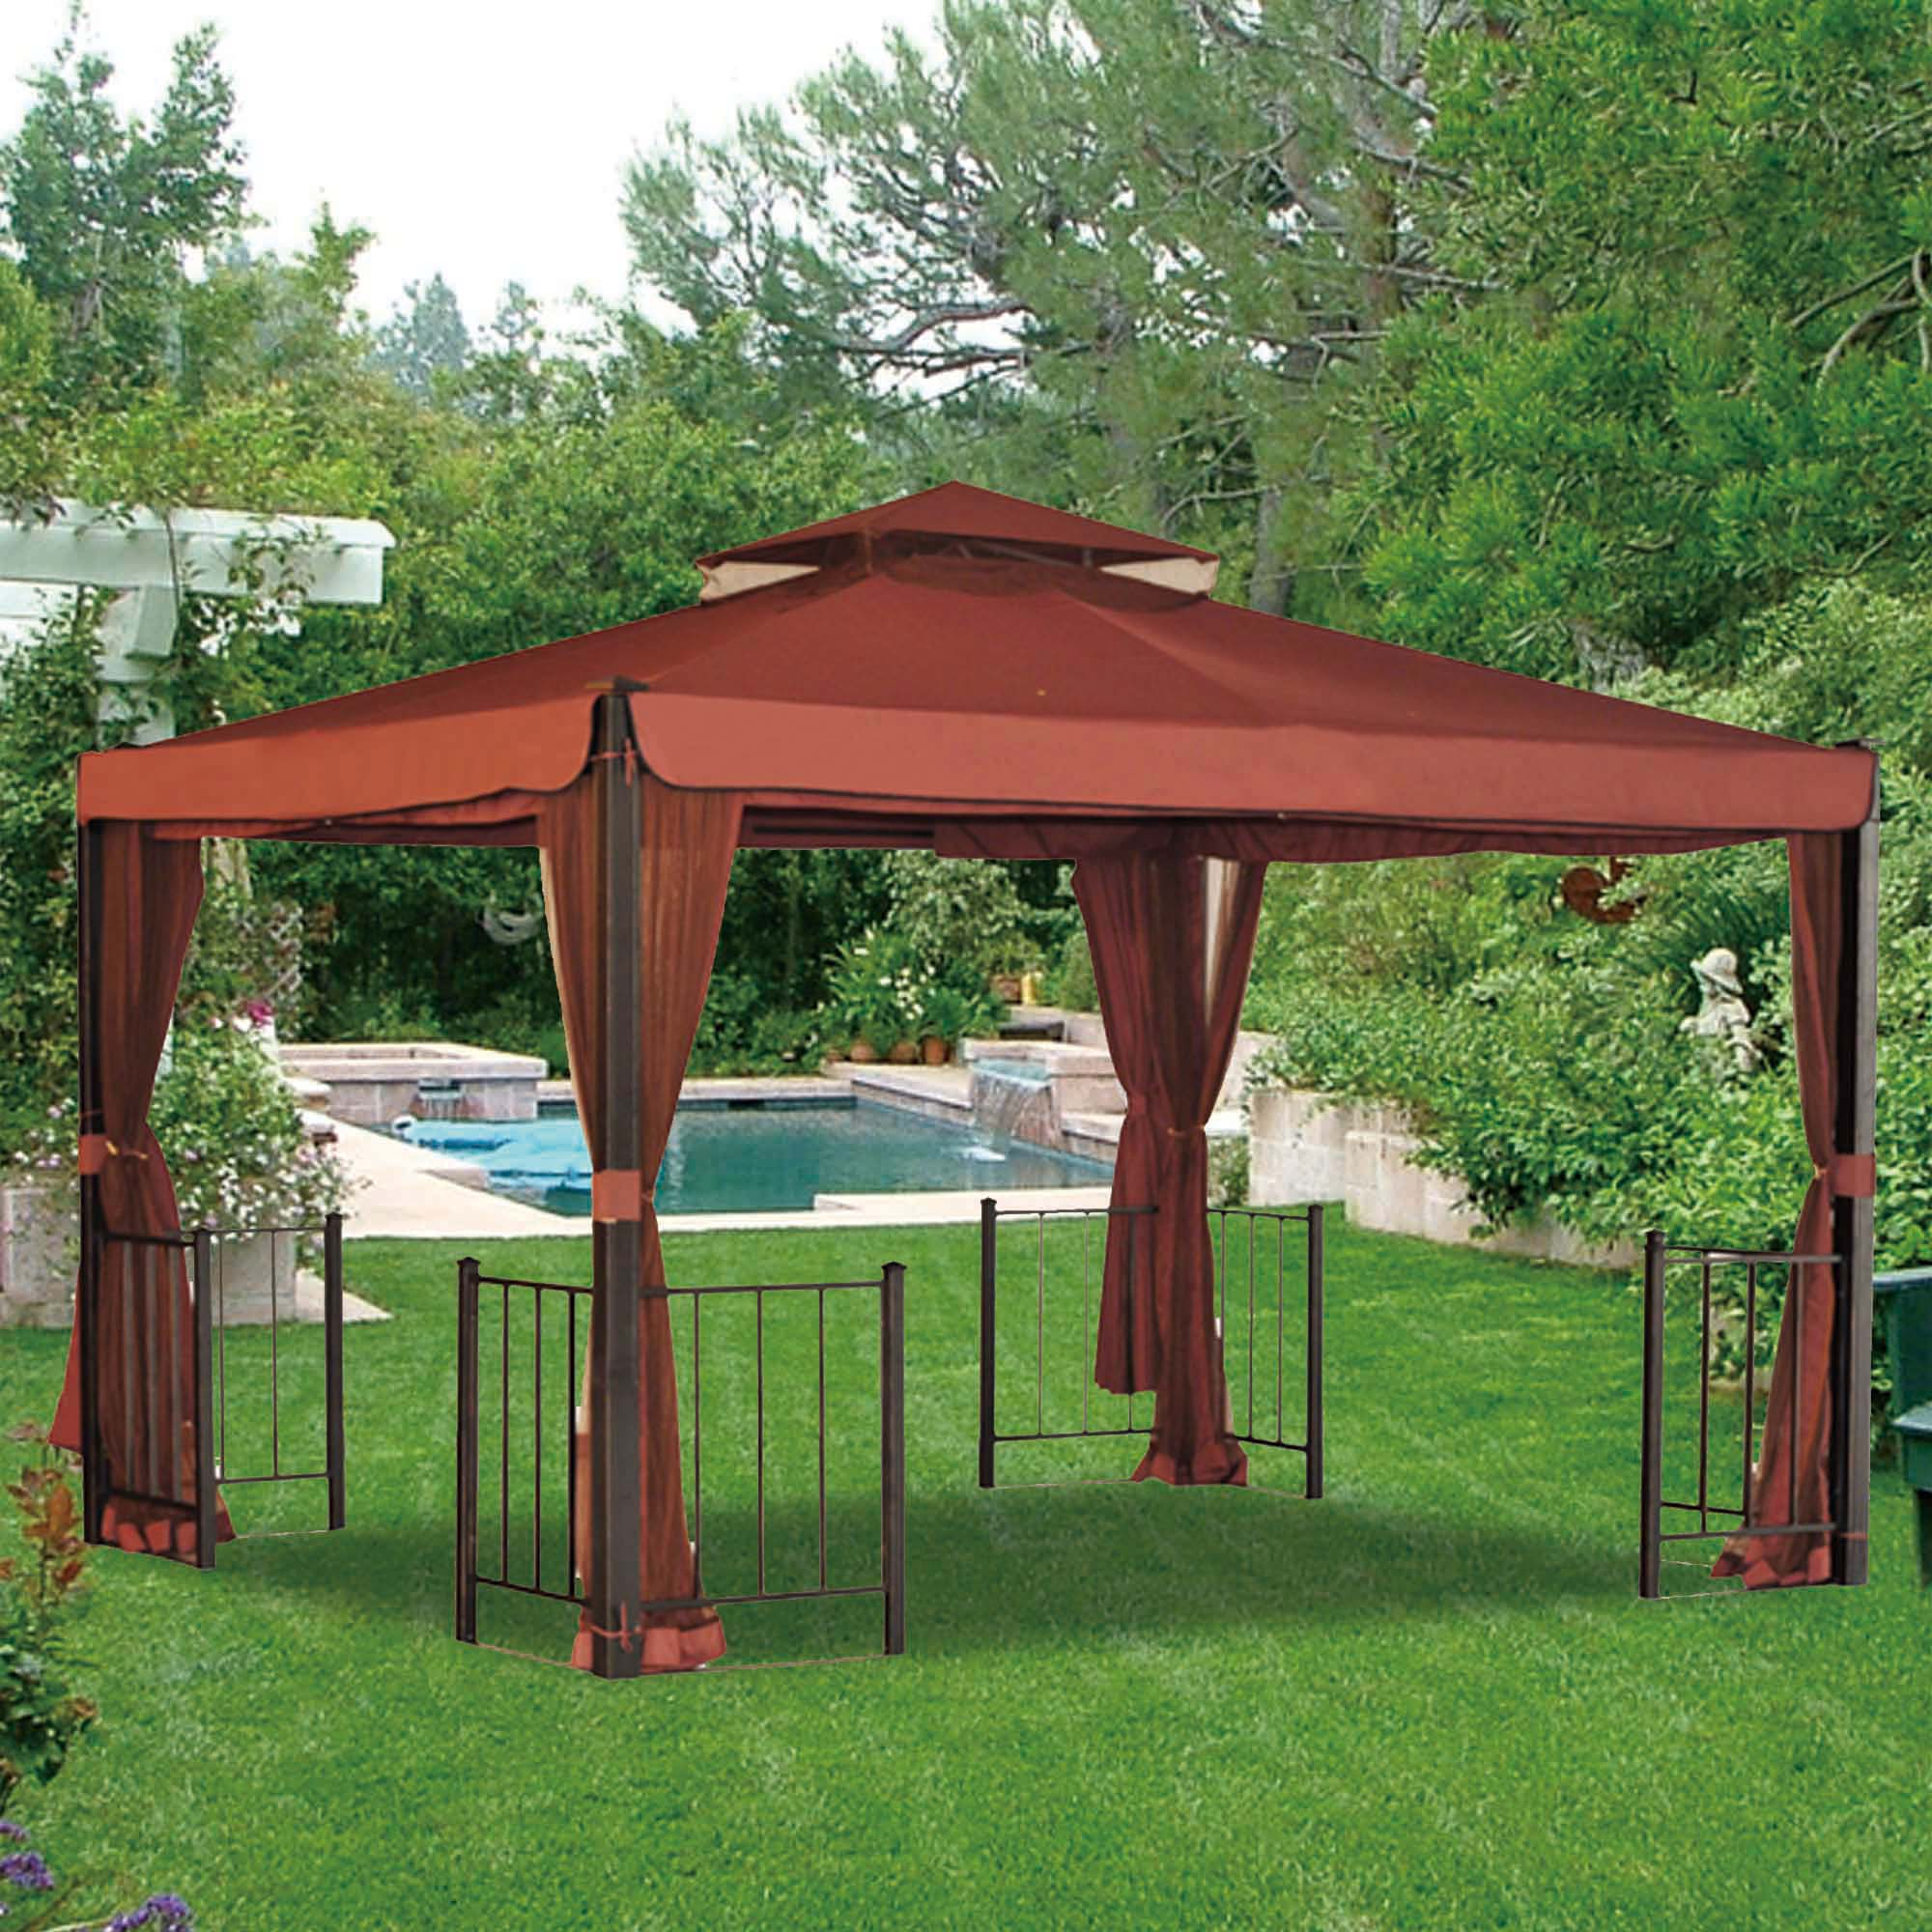 Breathtaking sunjoy gazebo for garden ideas with sunjoy hardtop gazebo and sunjoy grill gazebo